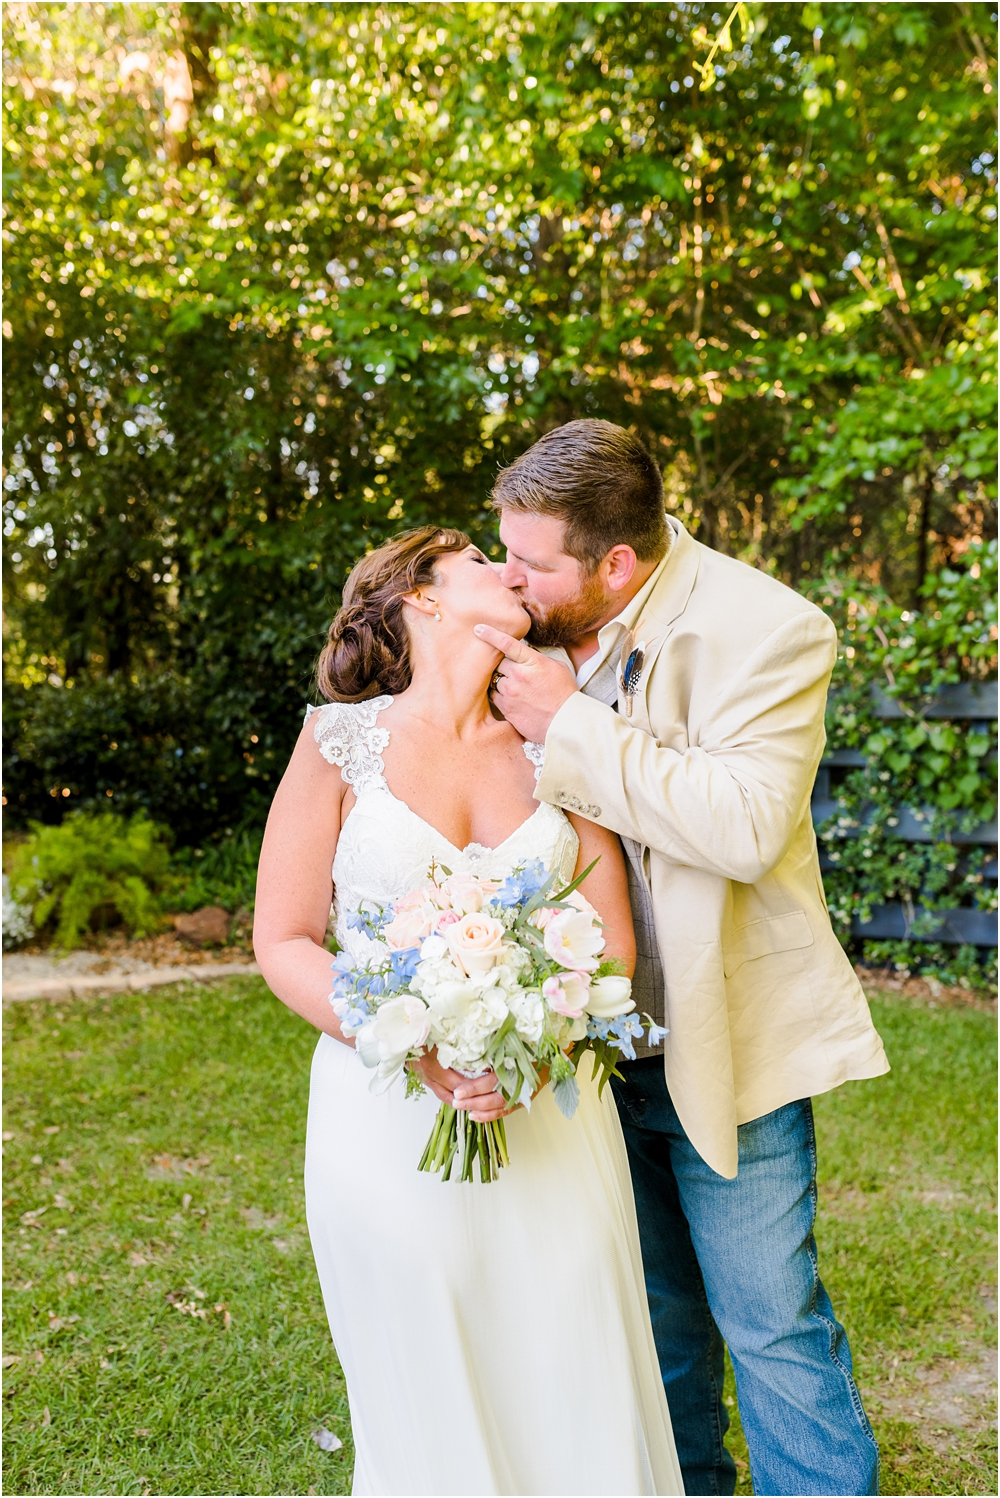 king-southern-lea-farms-vernon-florida-wedding-kiersten-stevenson-photography-(325-of-578).JPG